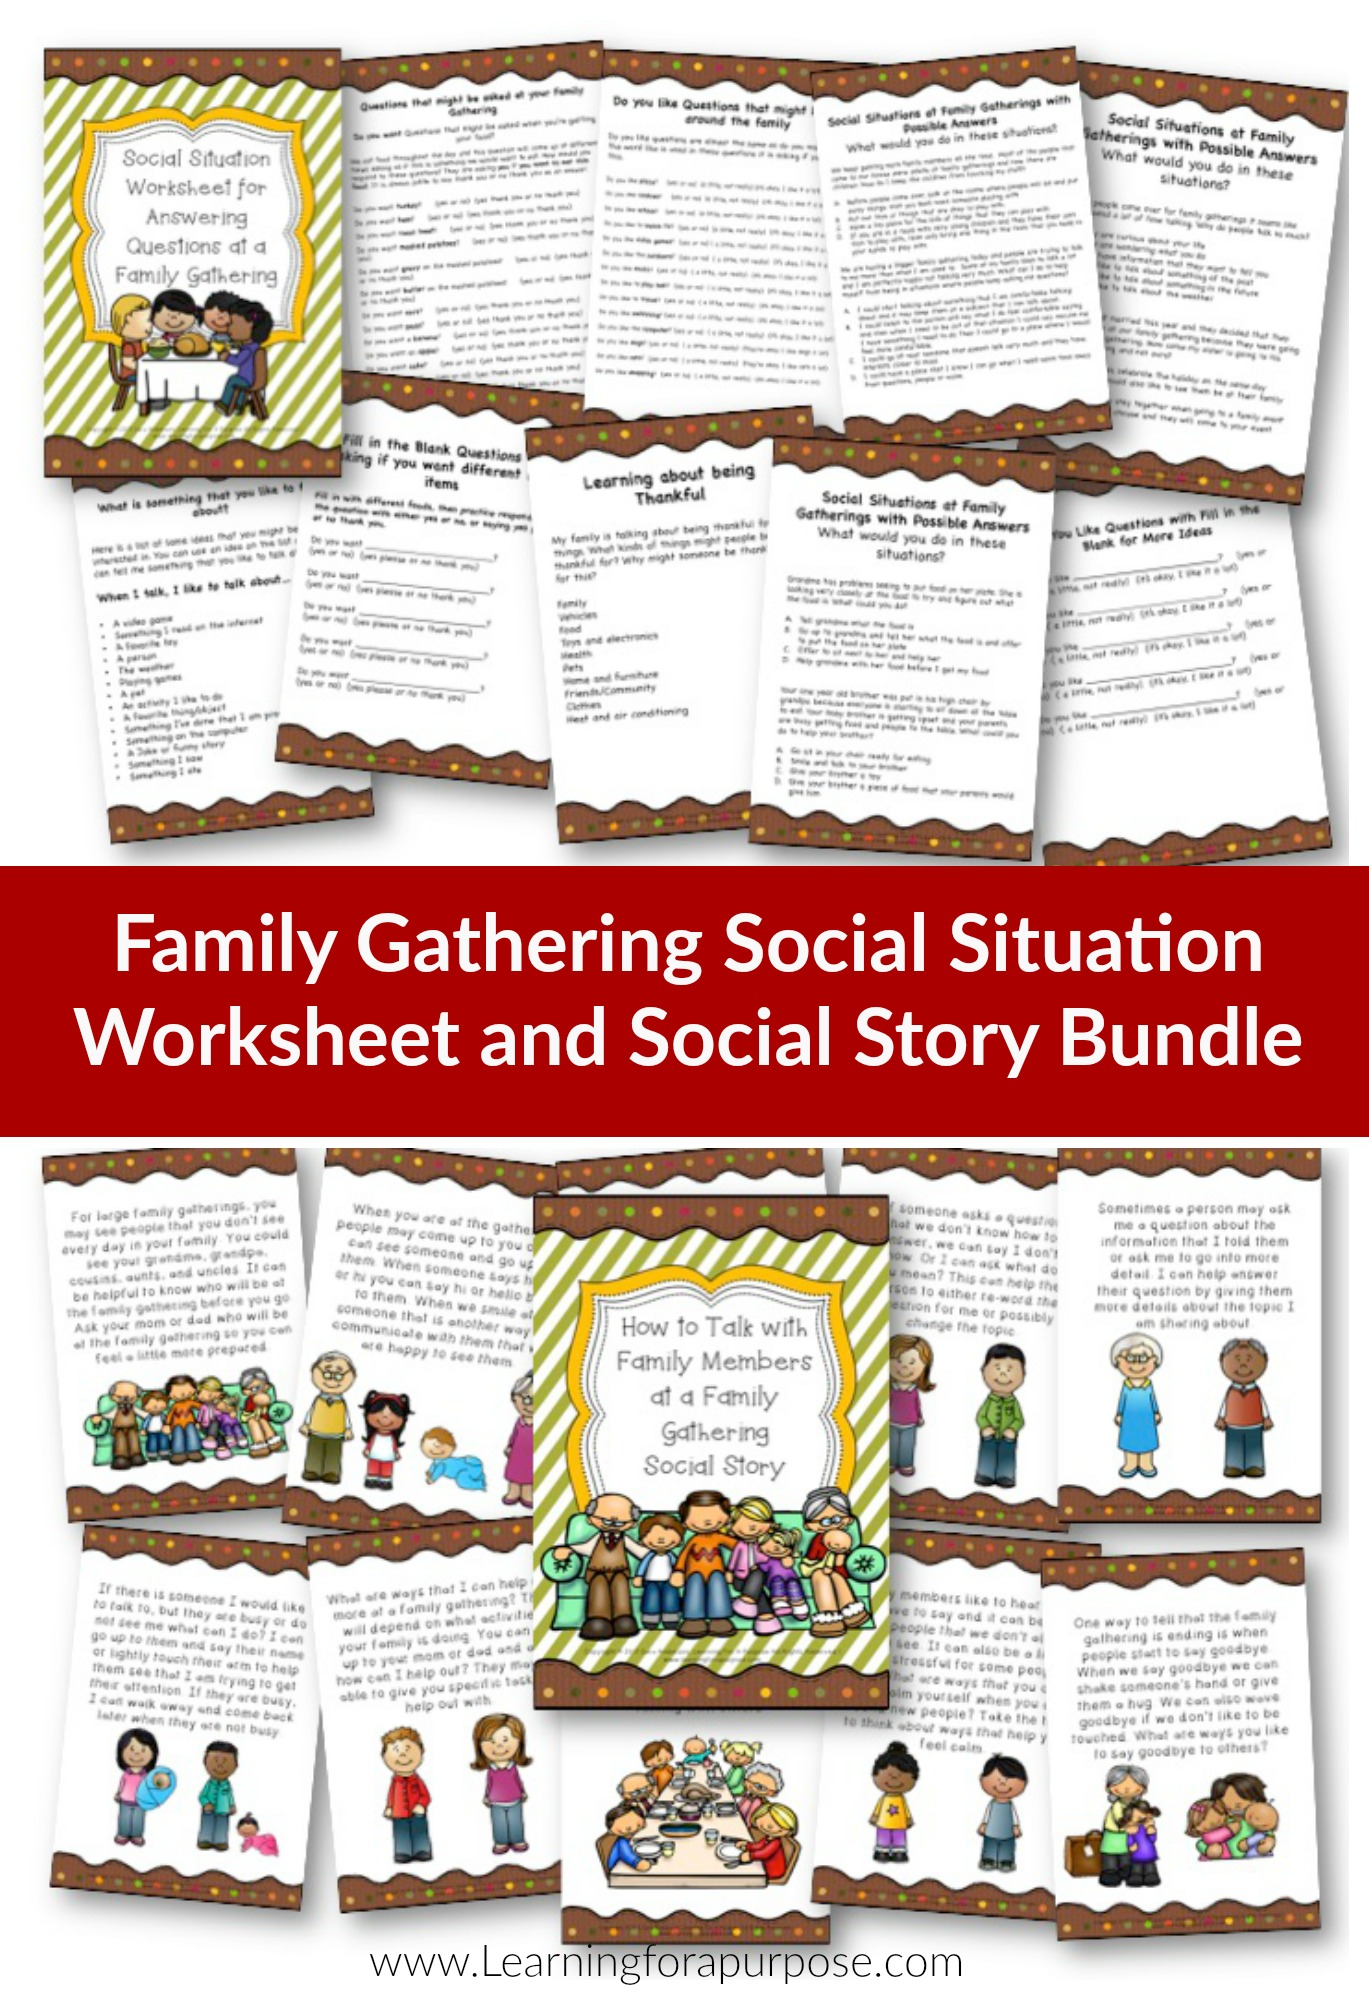 One Time Offer Family Gathering Social Situation Bundle